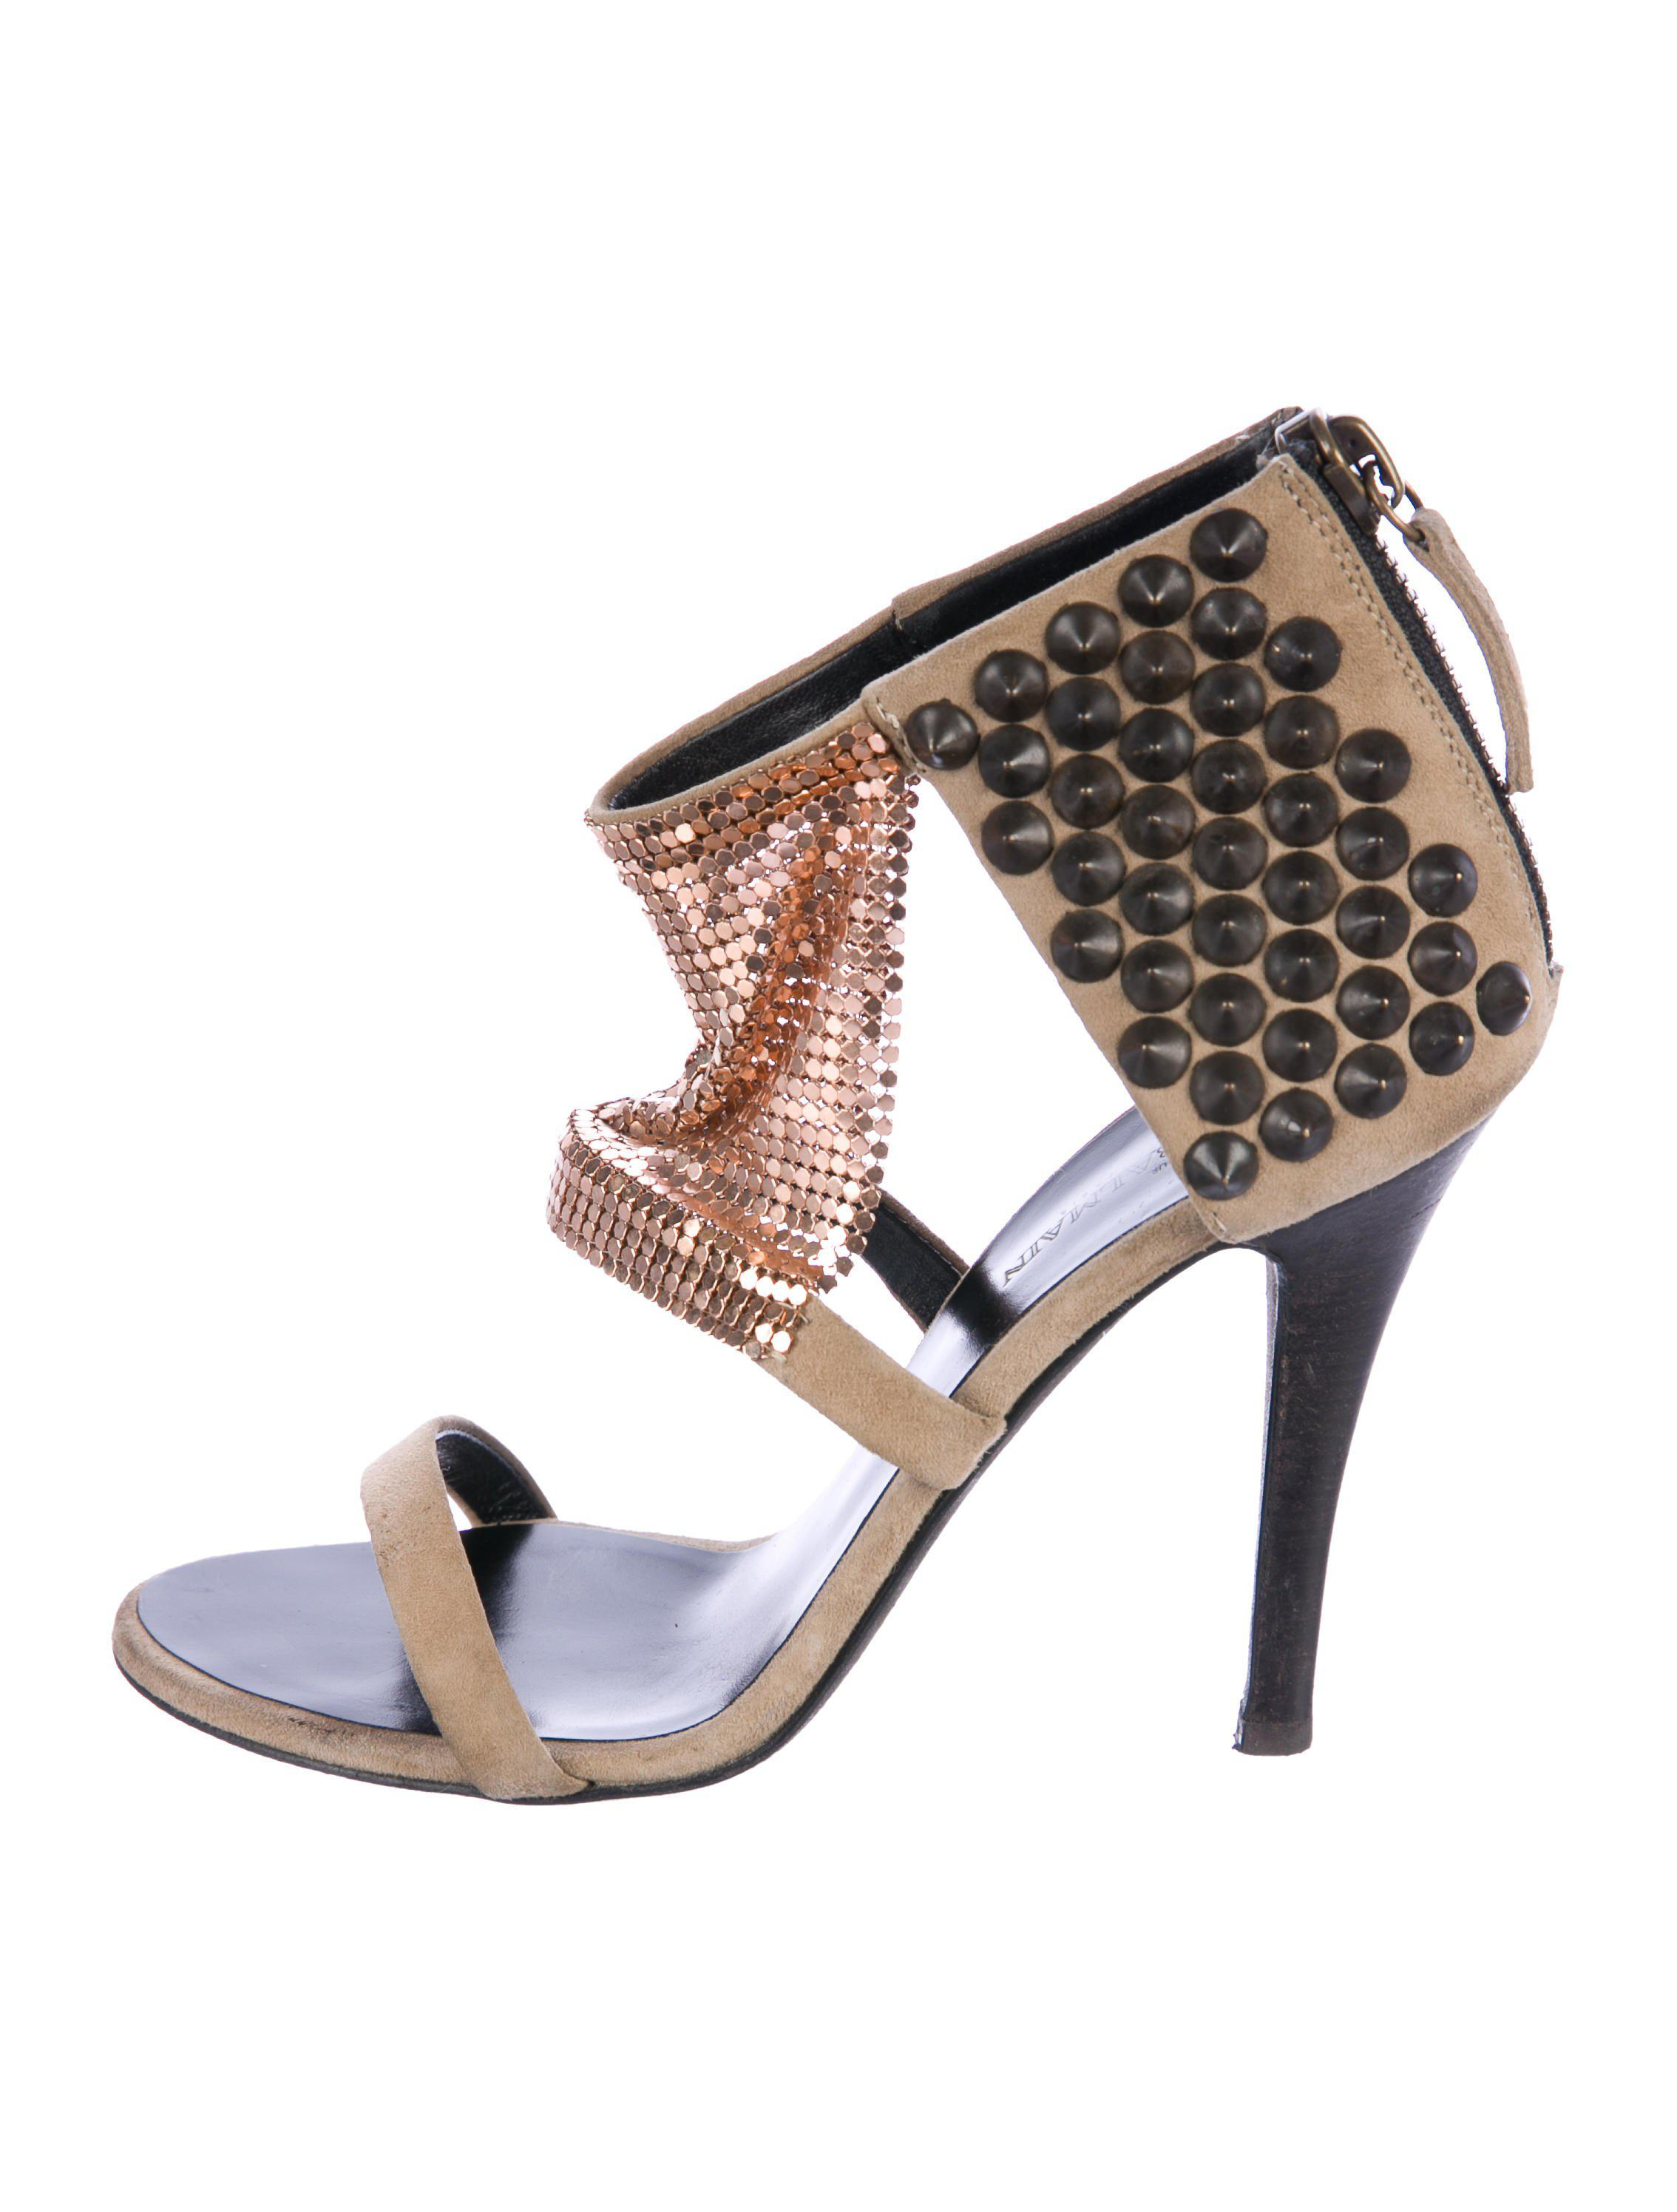 Balmain Suede Embellished Sandals huge surprise sale online outlet deals official cheap price outlet from china 0Kaae9